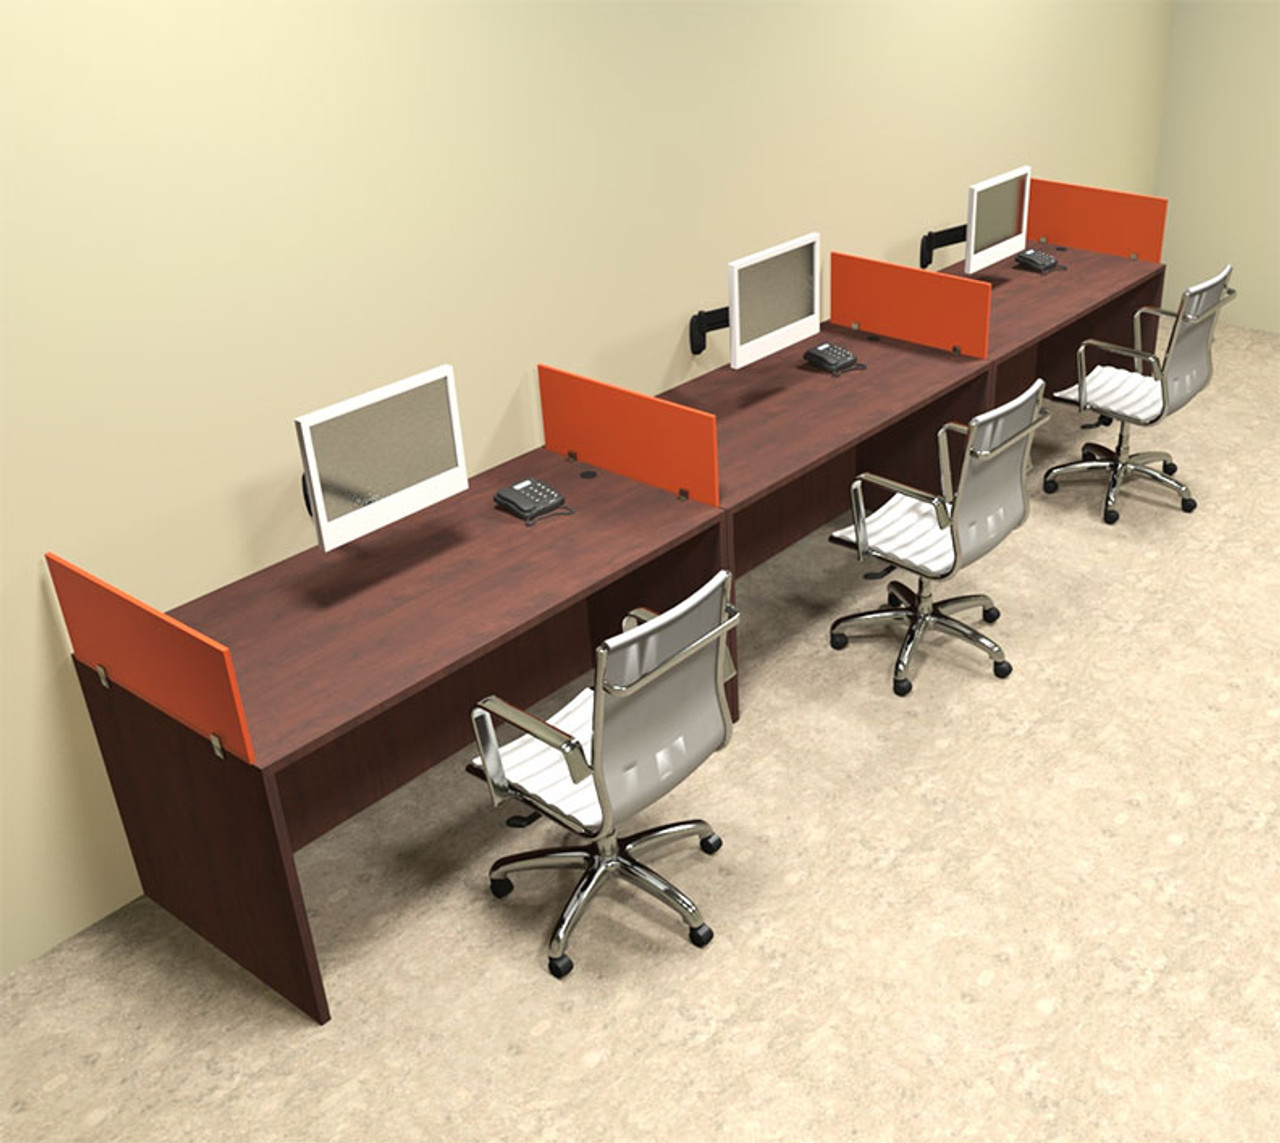 Three Person Orange Divider Office Workstation Desk Set, #OT-SUL-SPO6